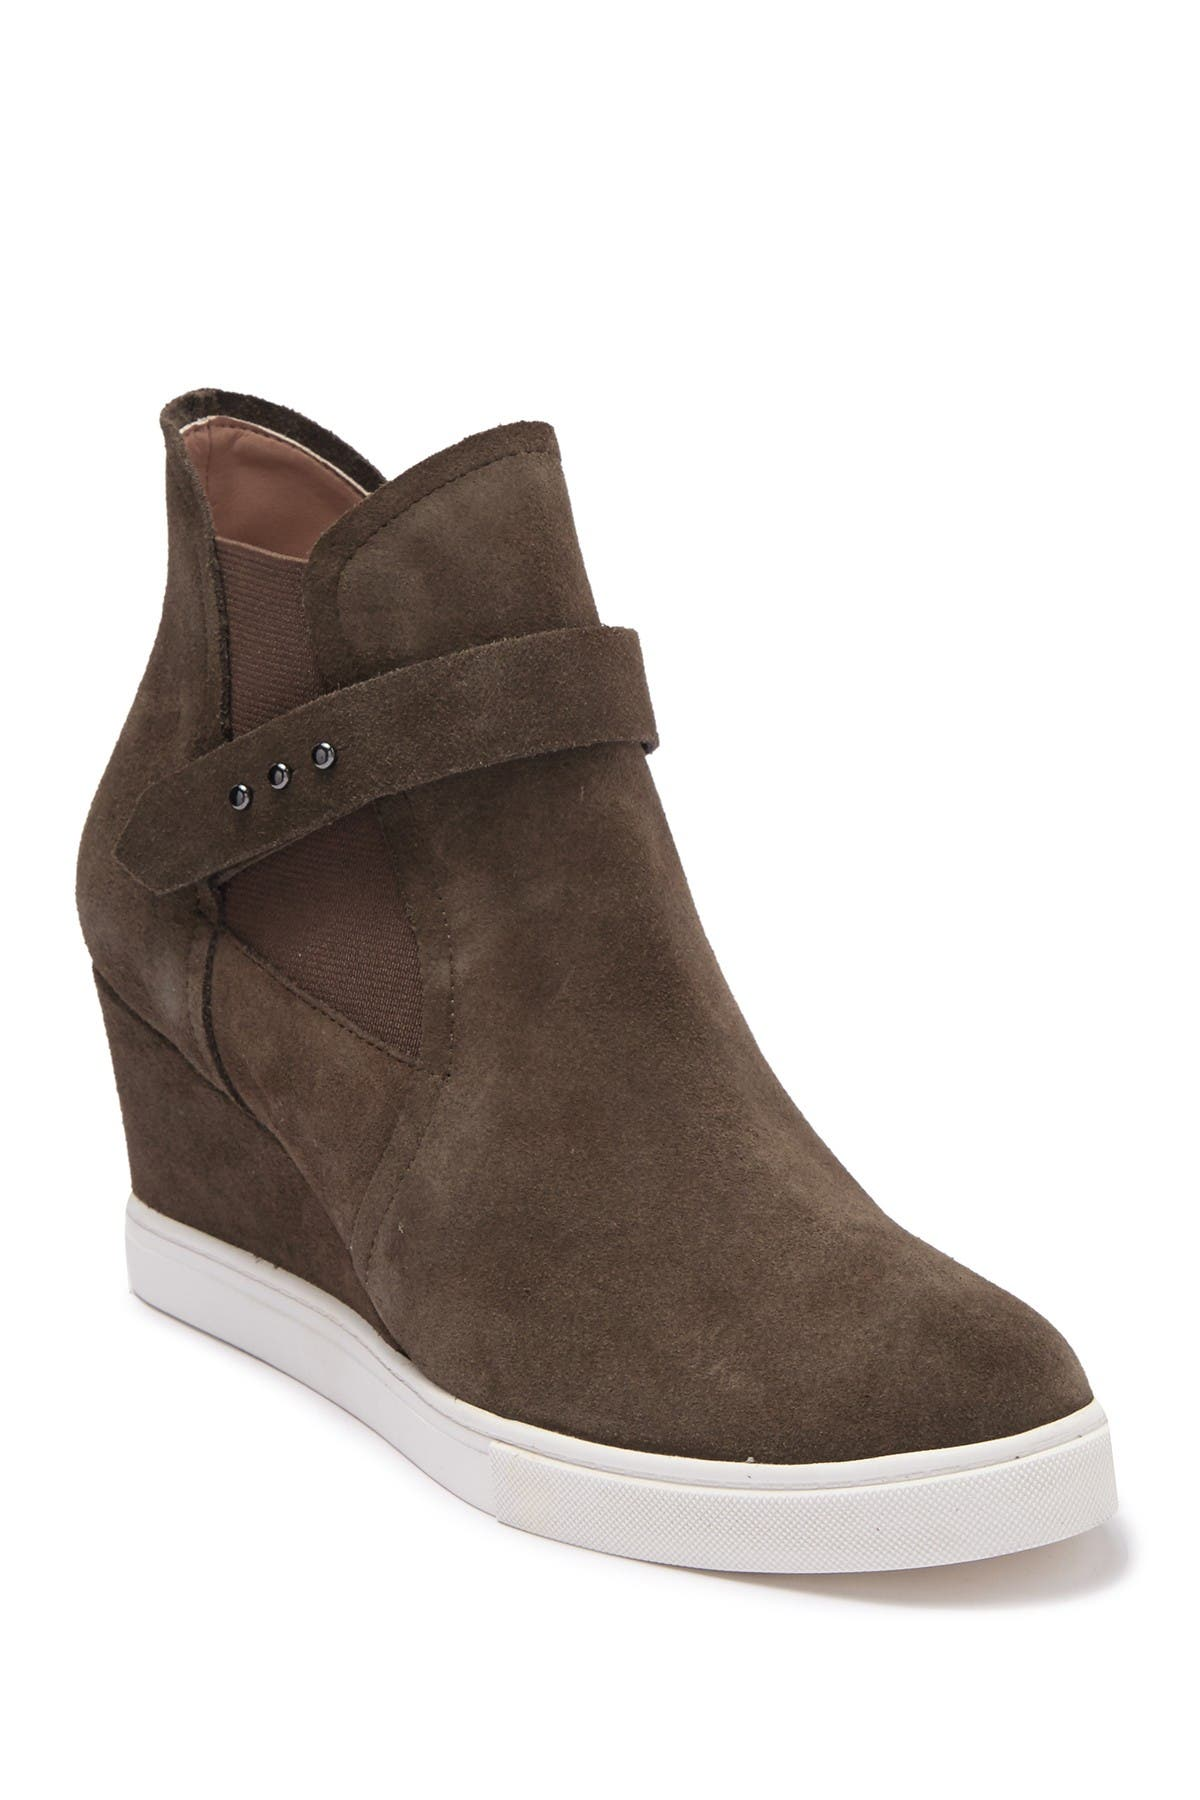 Image of Linea Paolo Freshton High Top Wedge Sneaker